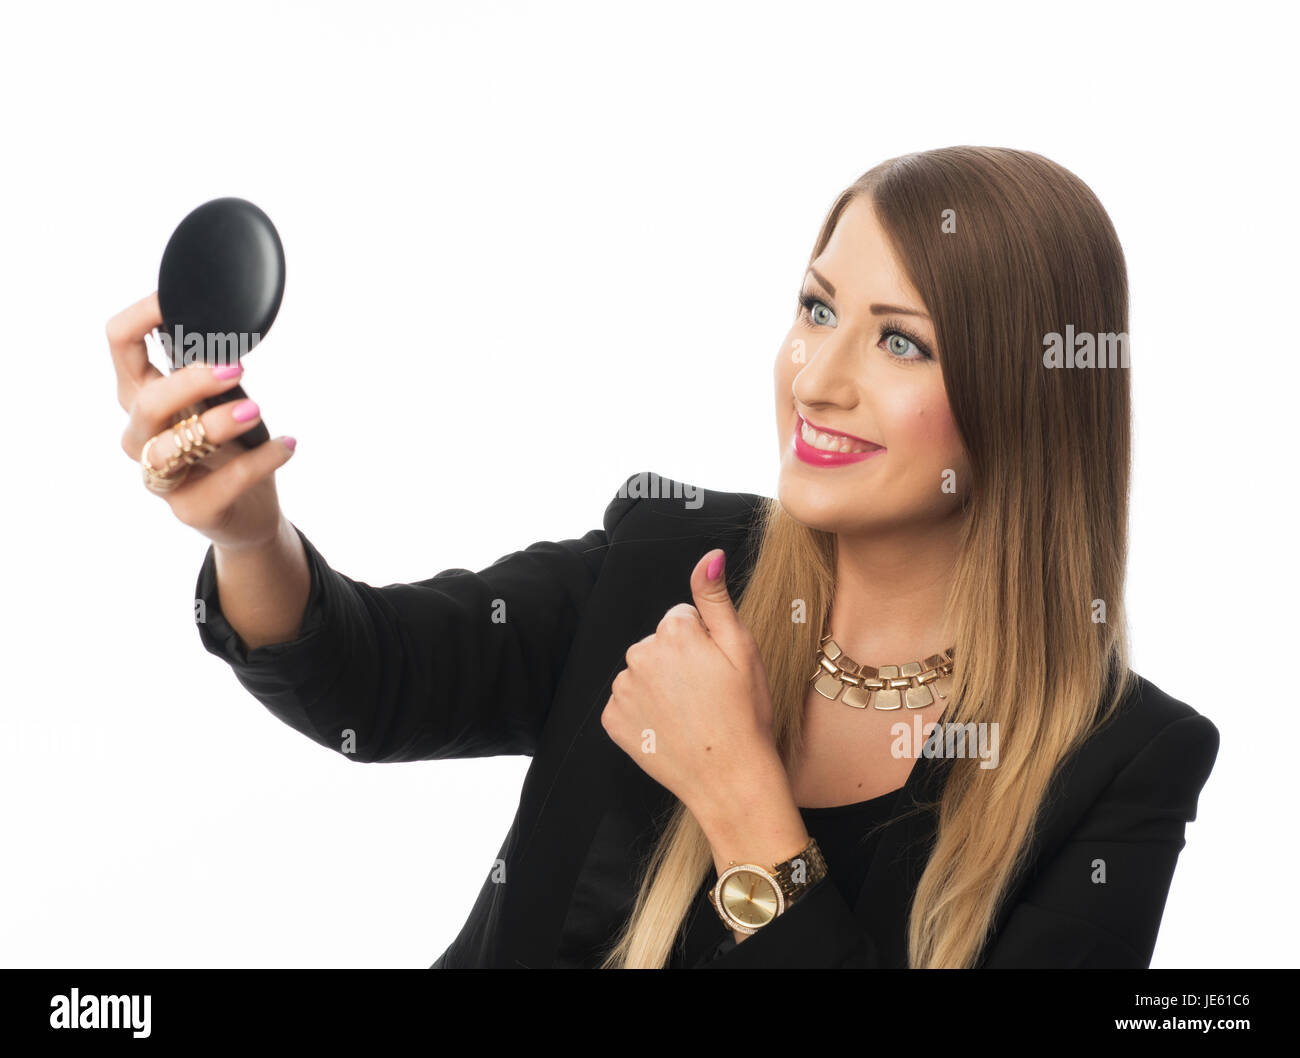 woman holding hand mirror. Woman Holding Hand Mirror I